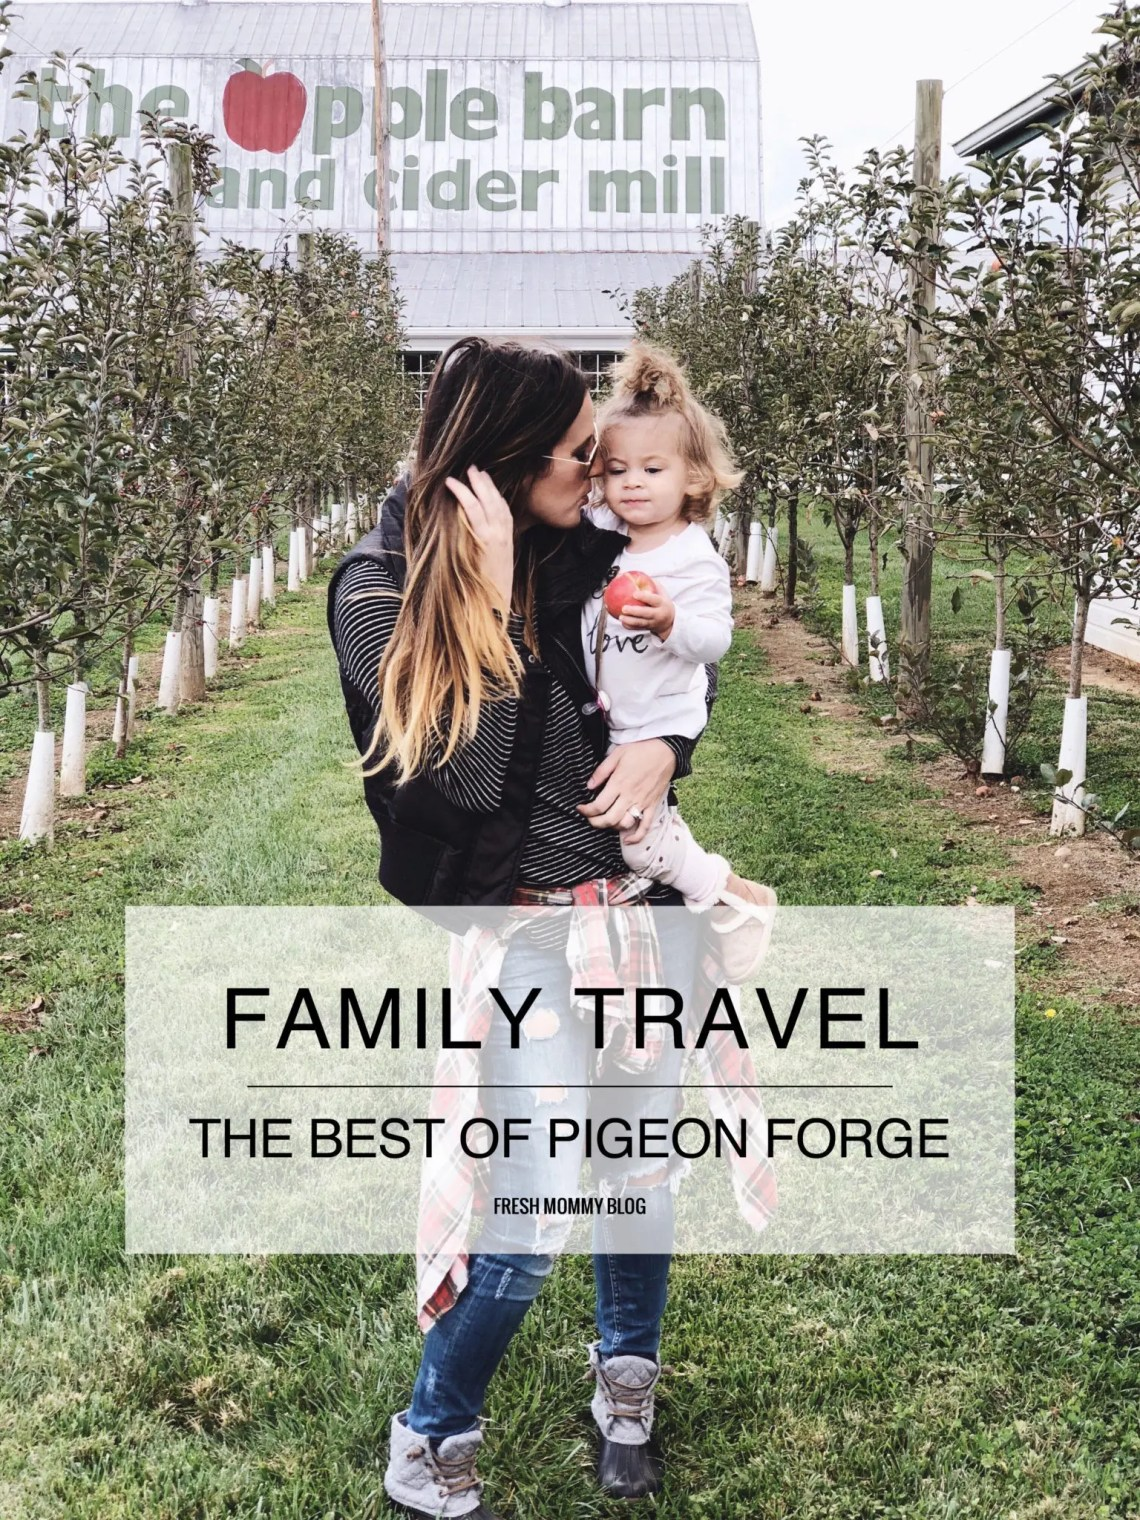 The best of Pigeon Forge for Family Travel